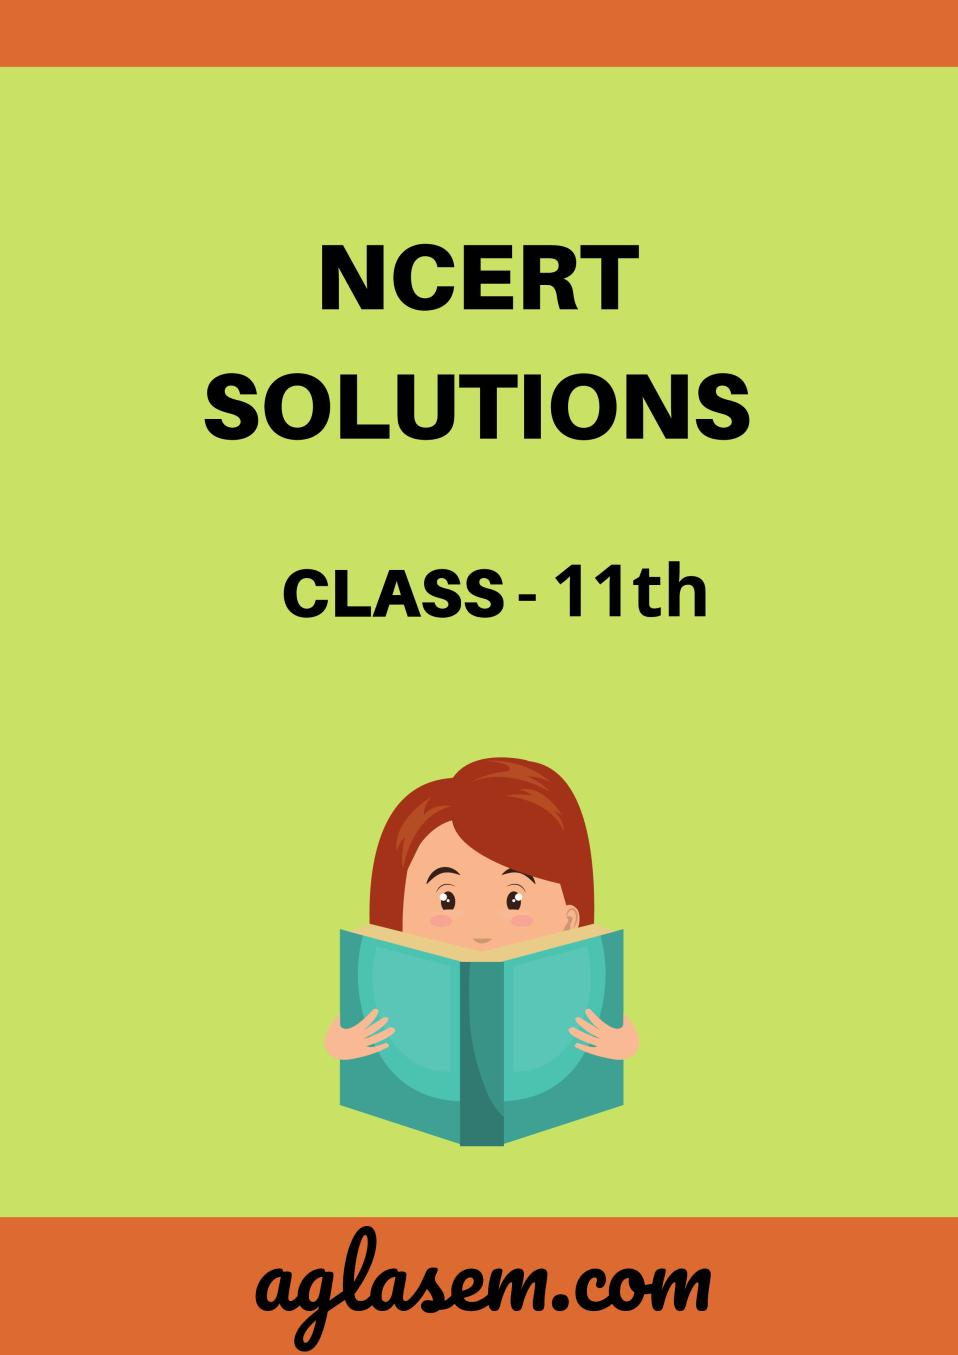 NCERT Solutions for Class 11 Physics Chapter 6 Work, Energy